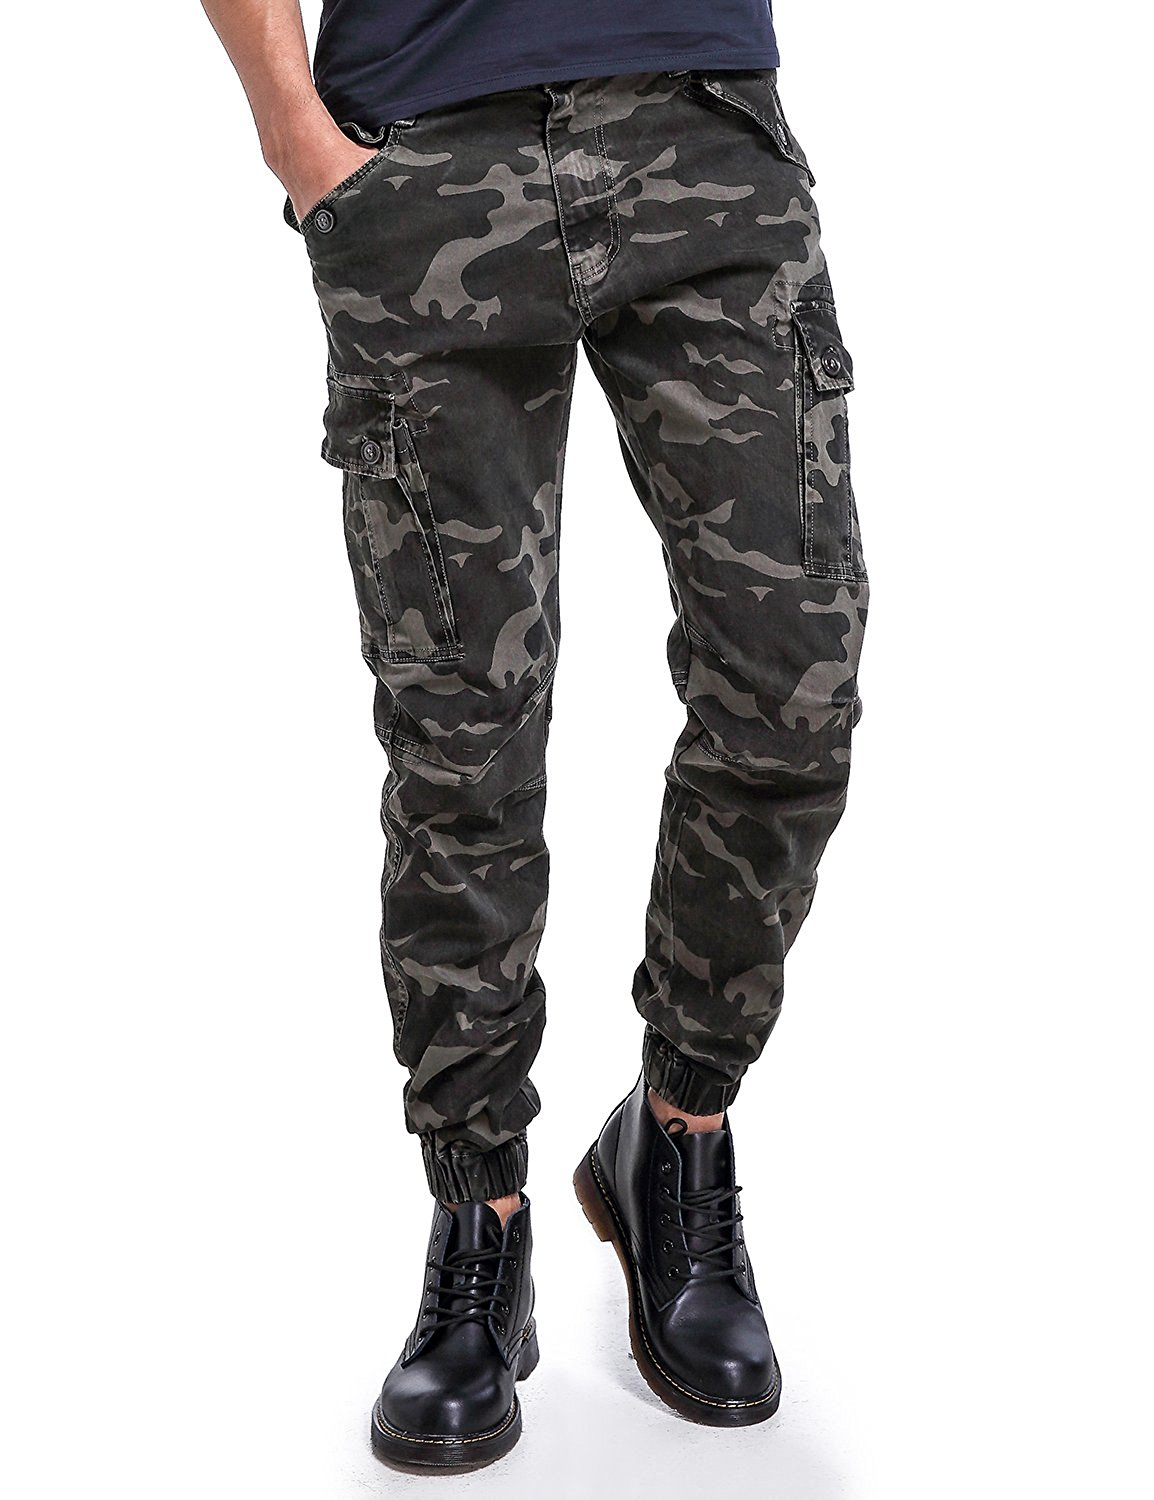 2a335cee Get Quotations · Eaglide Mens Slim Fit Chino Jogger Pants, Mens Athletic  Boys Casual Cargo Khaki Pants